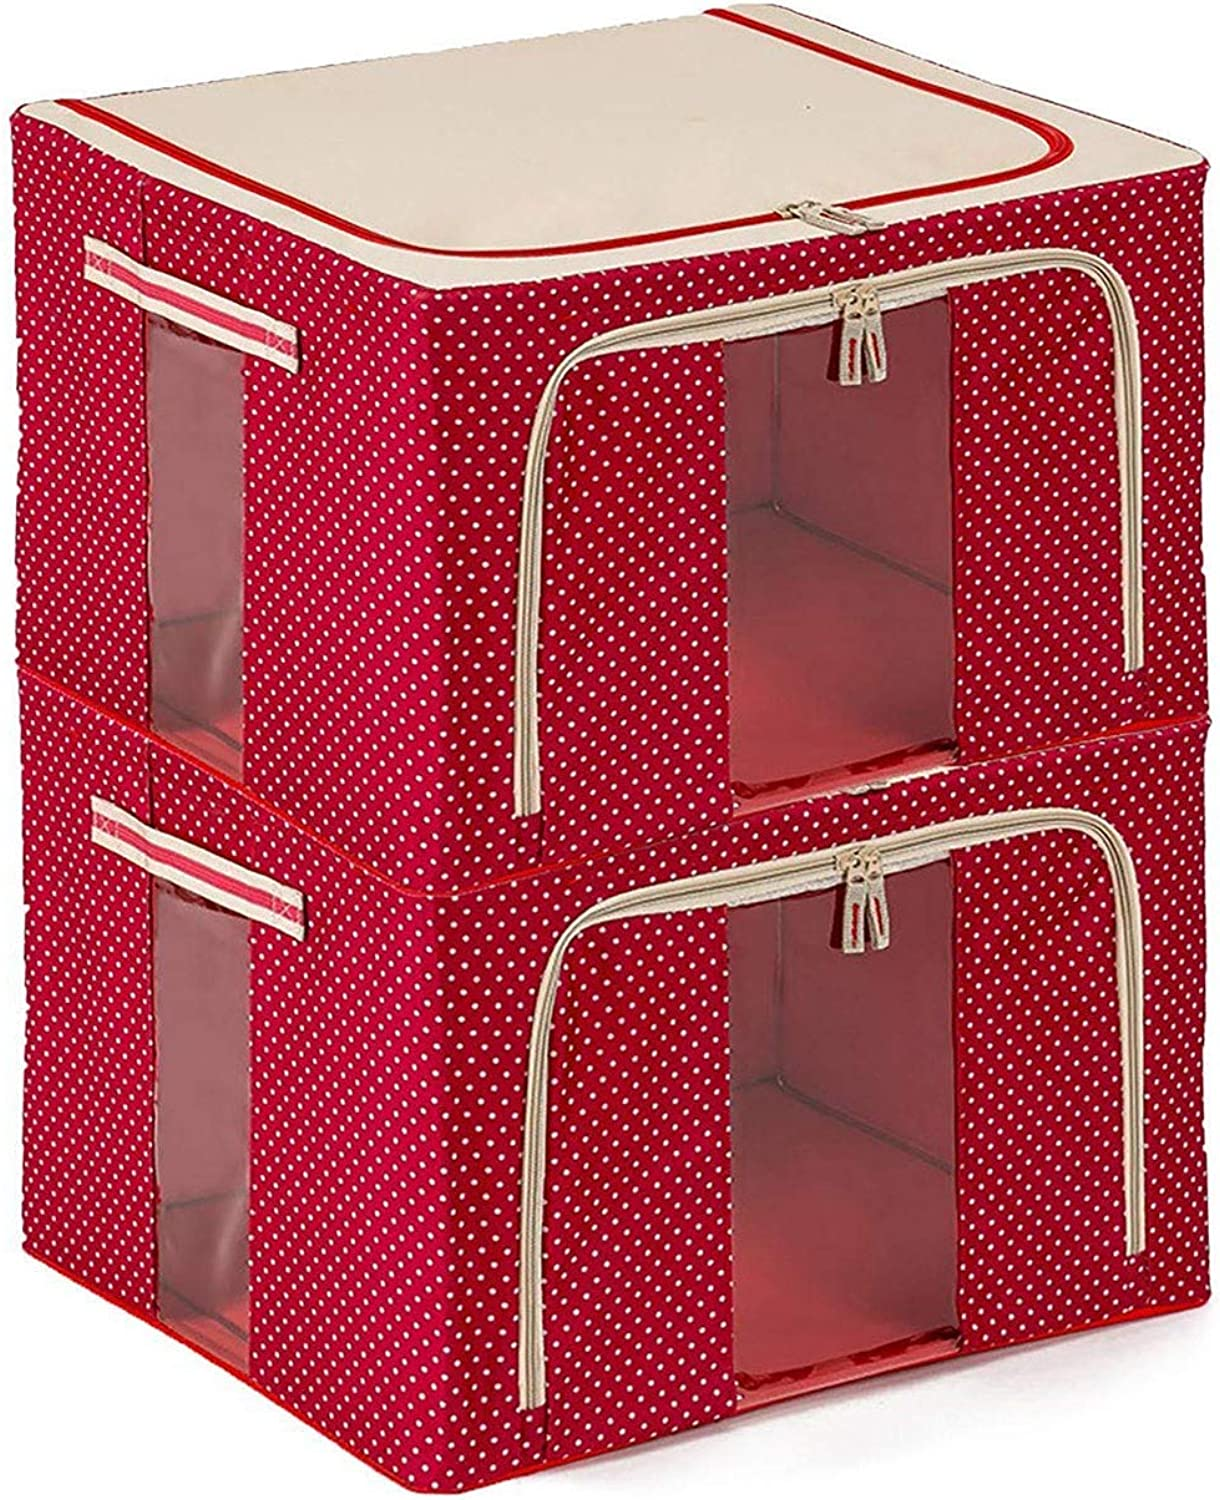 JJMG Stackable Polka Dots Oxford Cloth Steel Frame Shelf Quilt Clothing Blanket Pillow shoes Storage Box Holder Container Organizer See-Through Window Double Zipper Folding- Red 66L 20 x16 x13  (3)